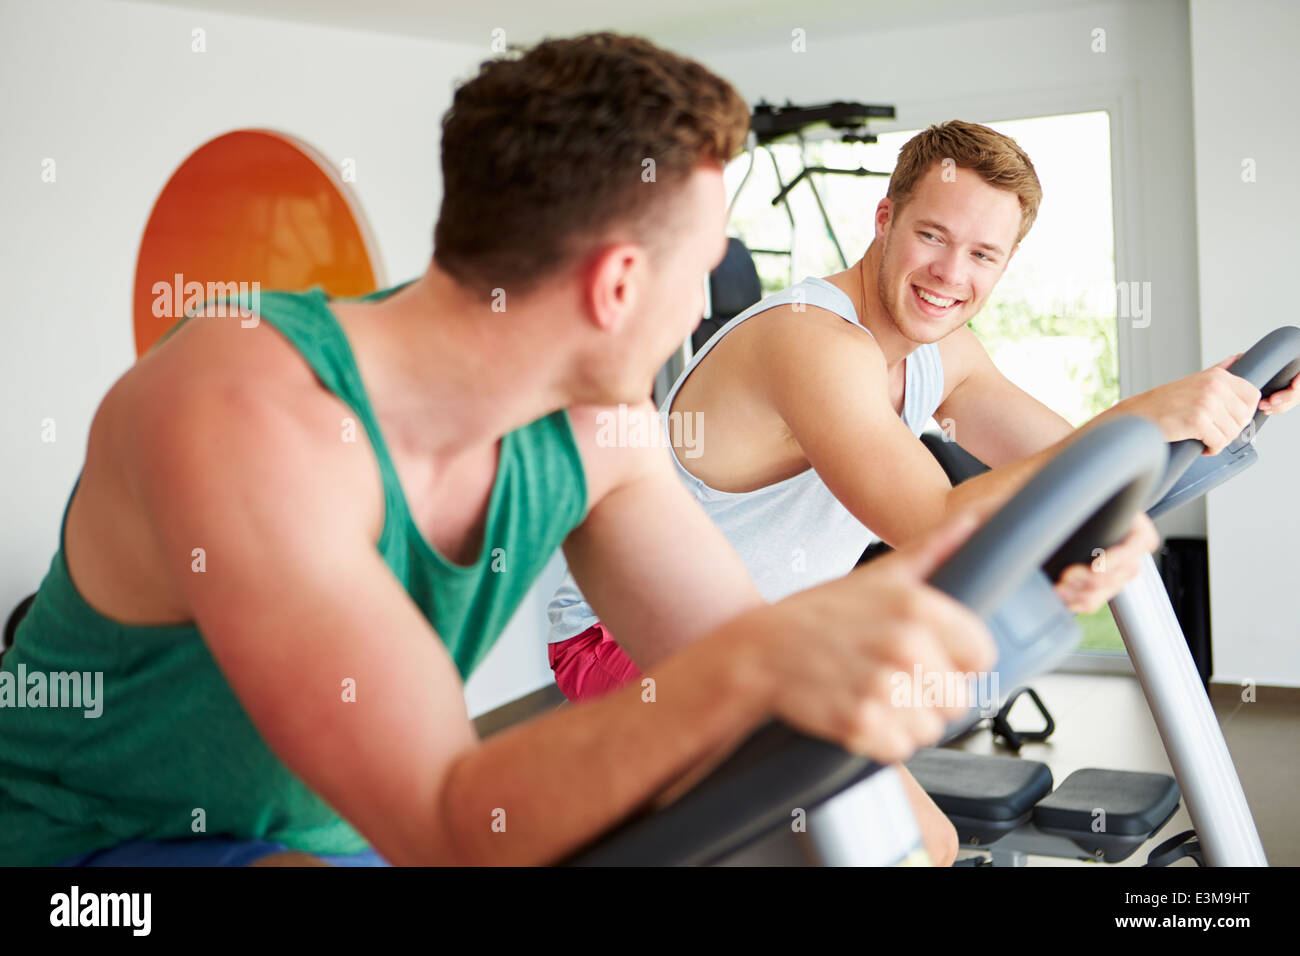 Two Young Men Training In Gym On Cycling Machines Together Stock Photo